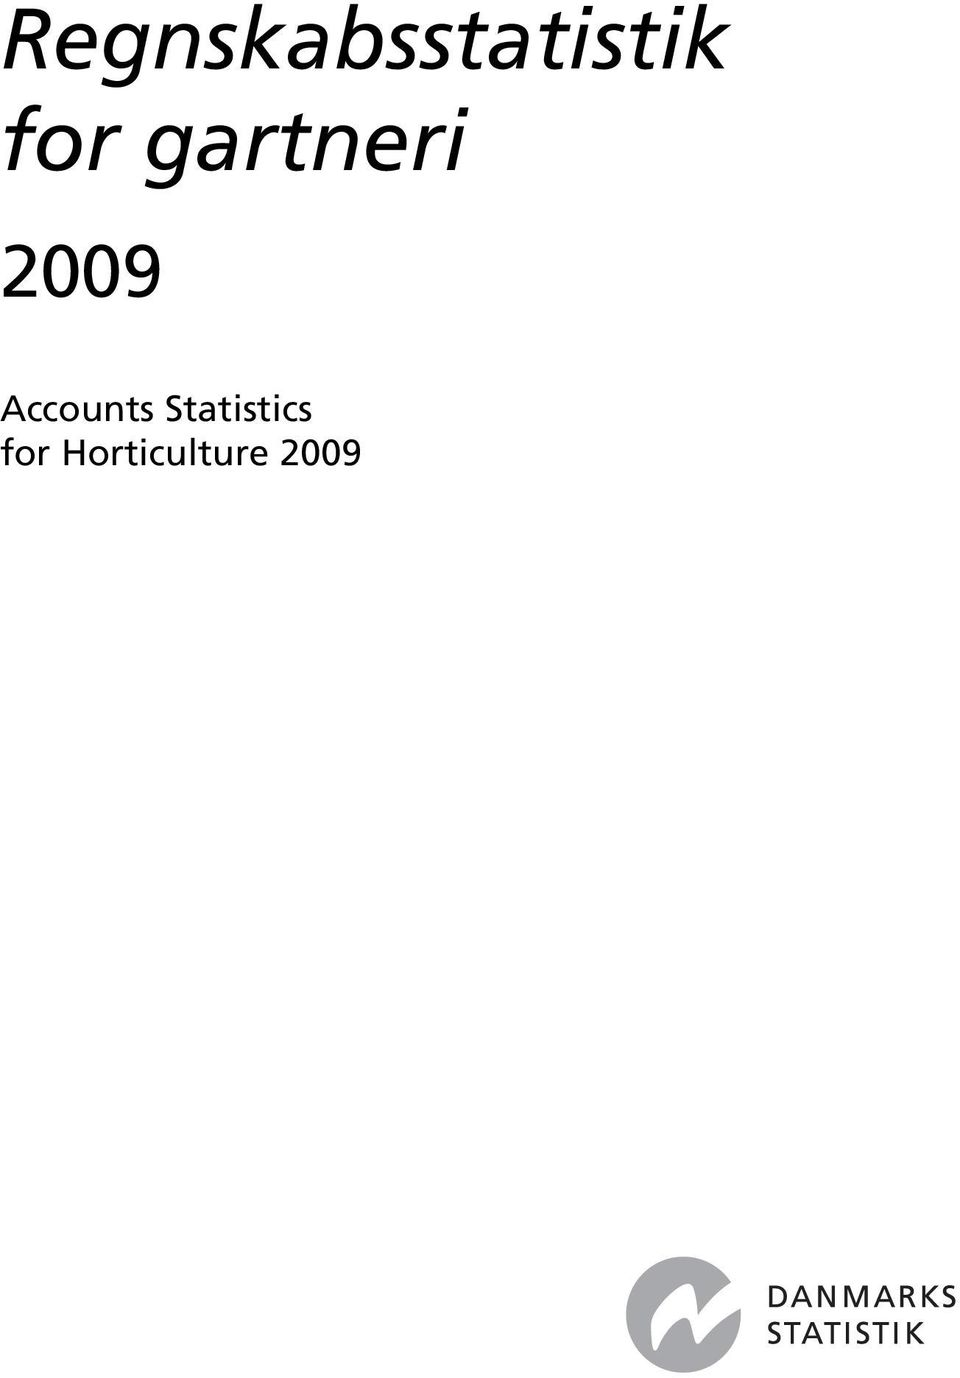 Accounts Statistics